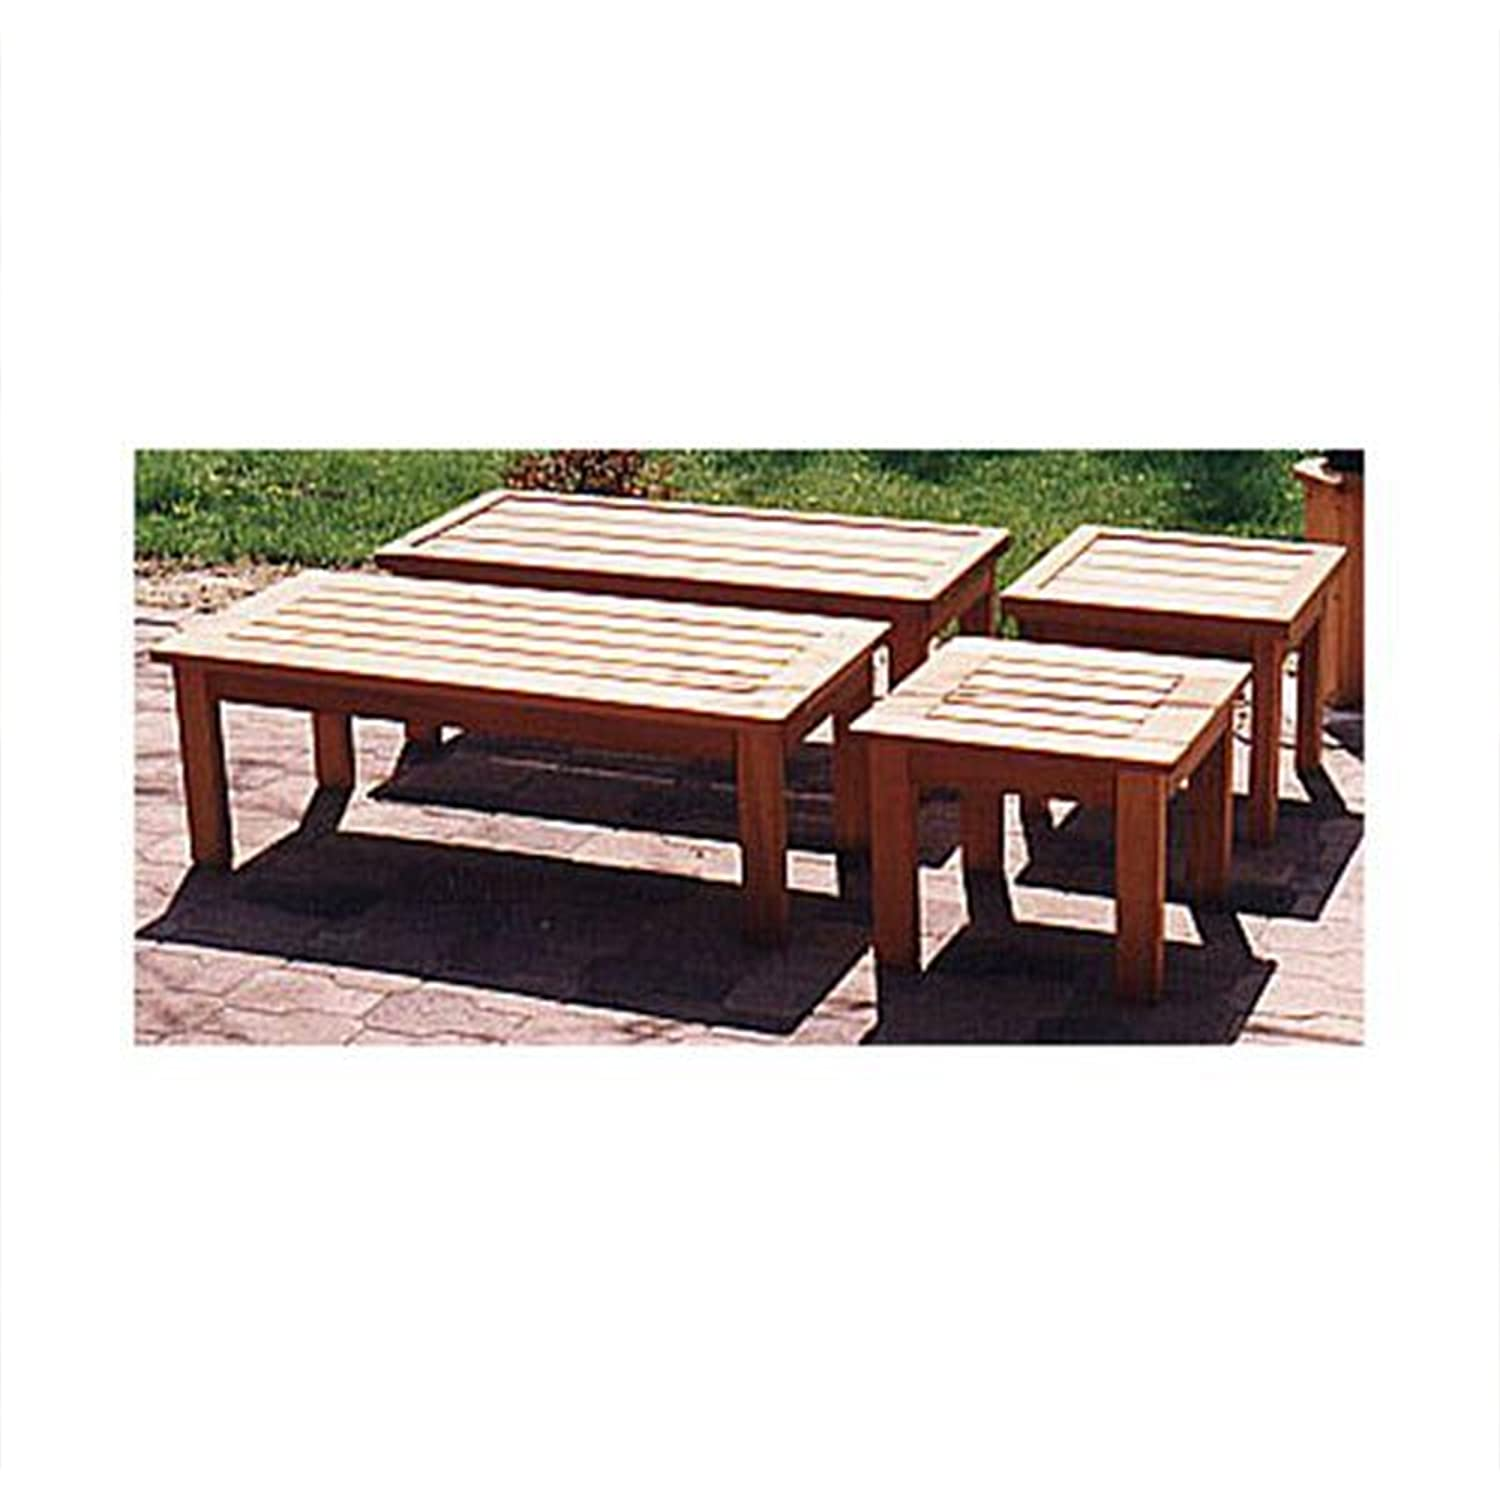 Amazing Woodworking Project Paper Plan To Build Patio Coffee Table Alphanode Cool Chair Designs And Ideas Alphanodeonline